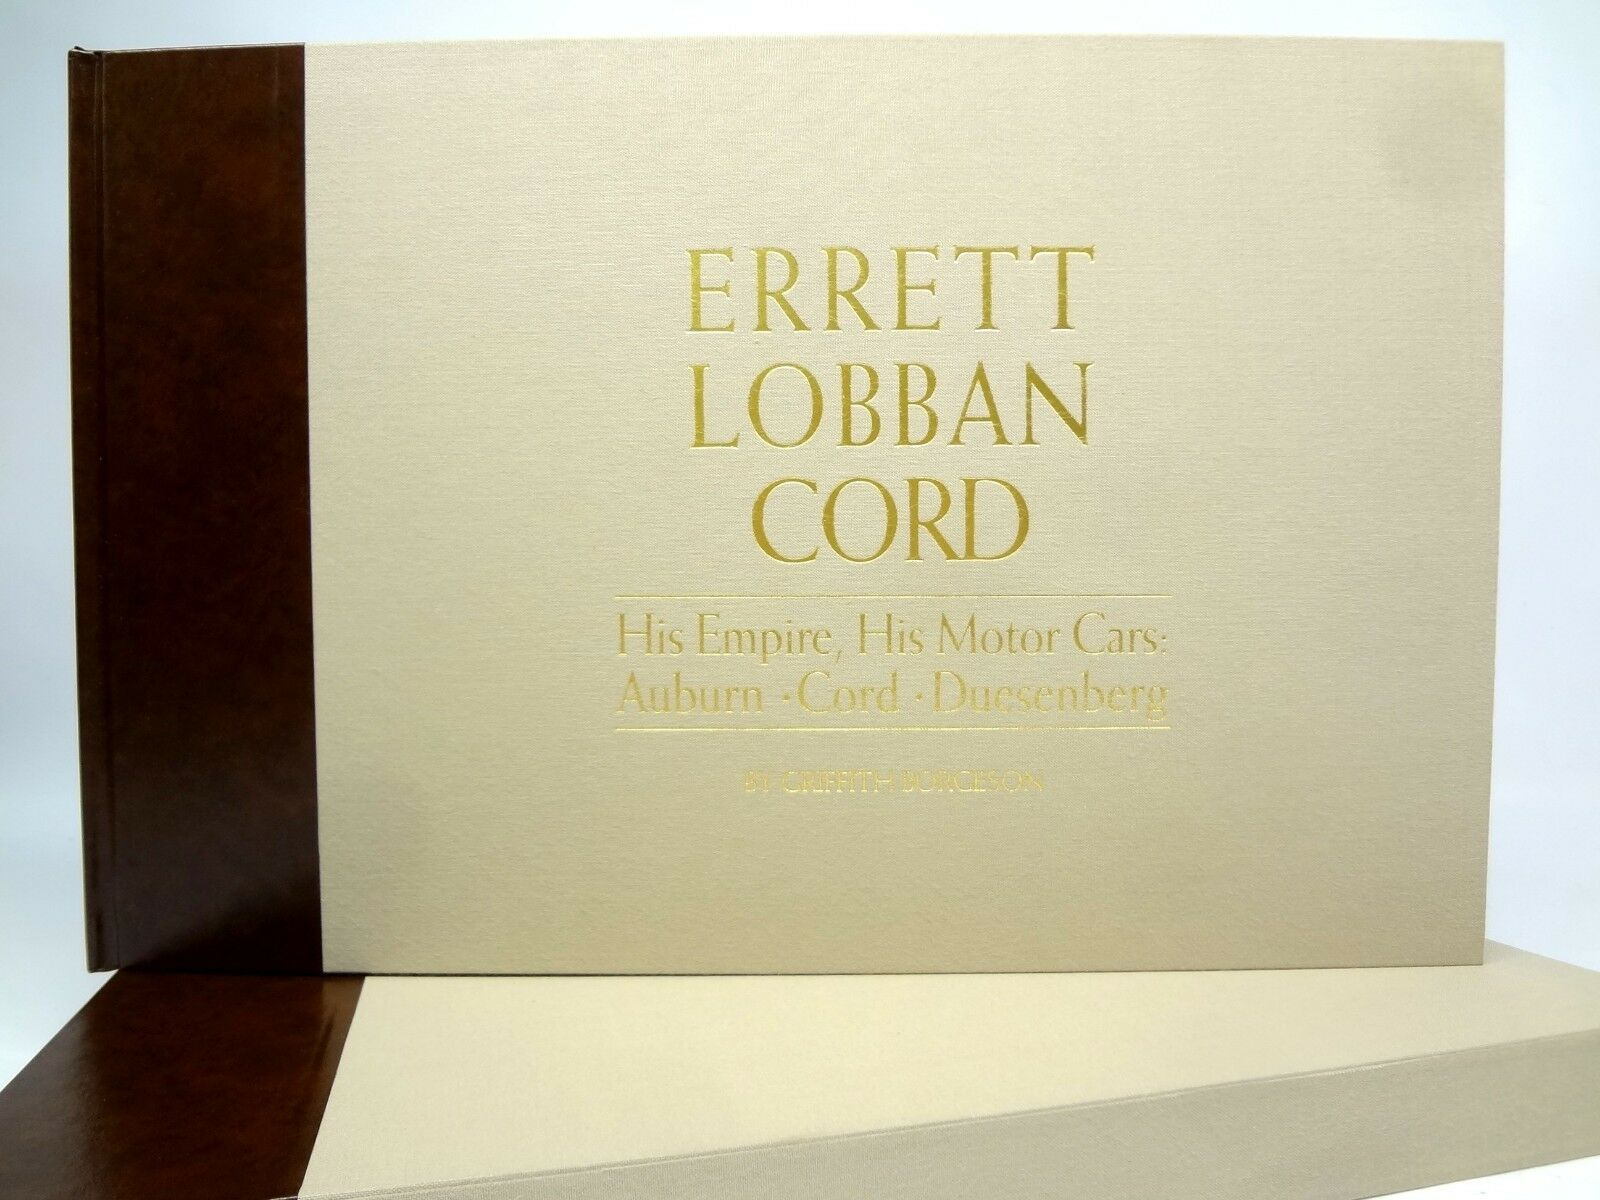 ERRETT LOBBAN CORD His Empire His Motor Cars by G.Borgeson E L Book - Auburn EL